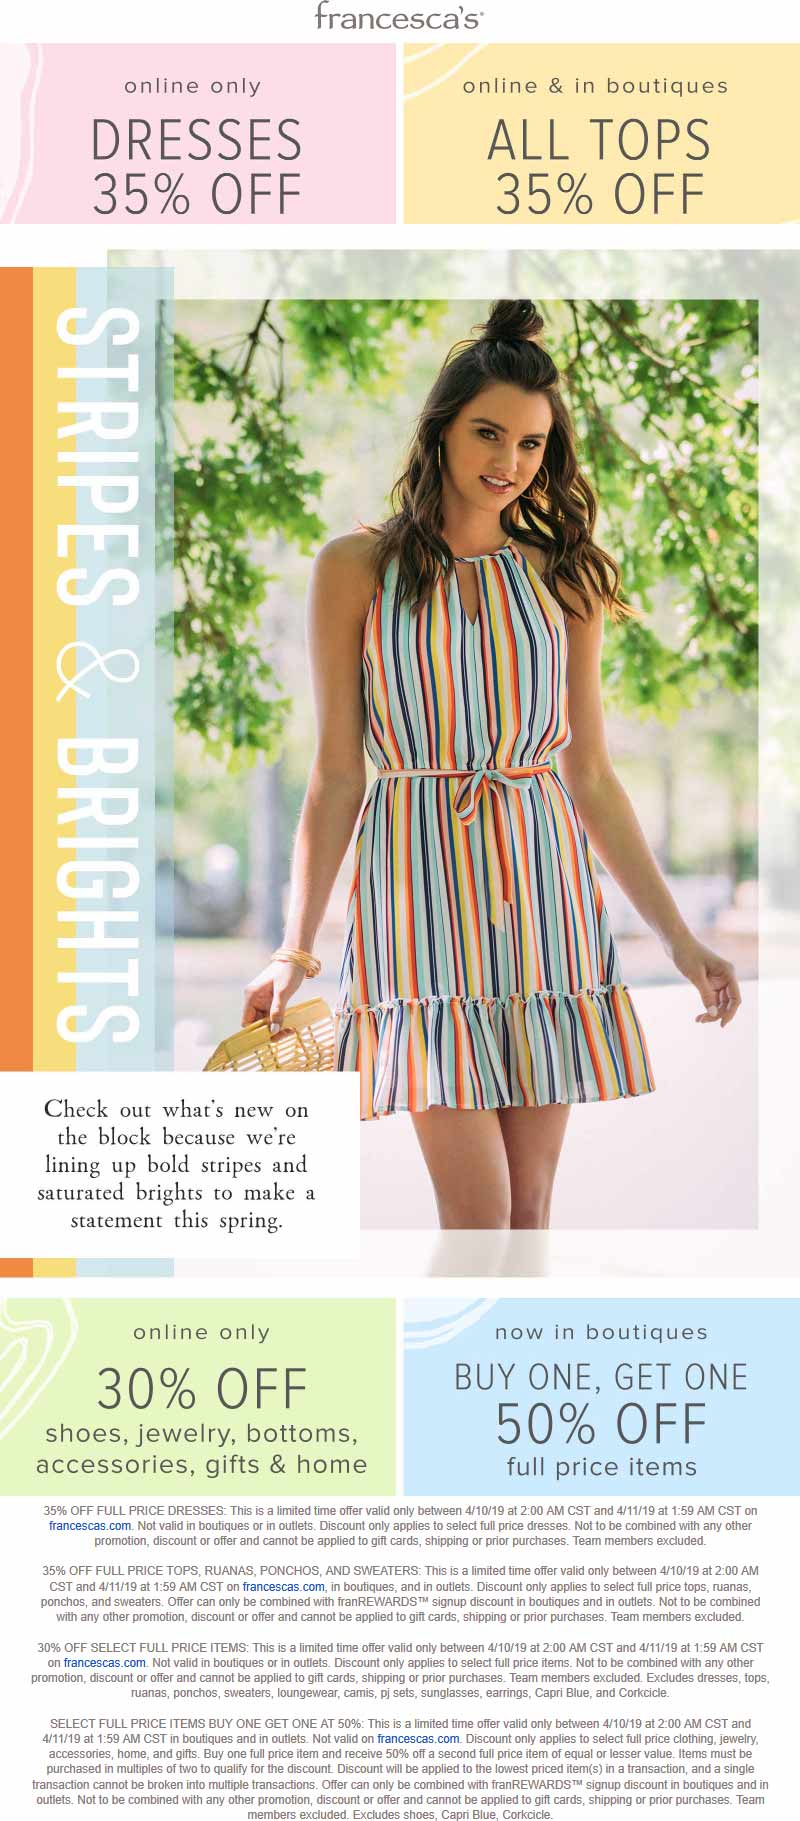 Francescas Coupon May 2019 Tops are 35% off at Francescas, ditto online